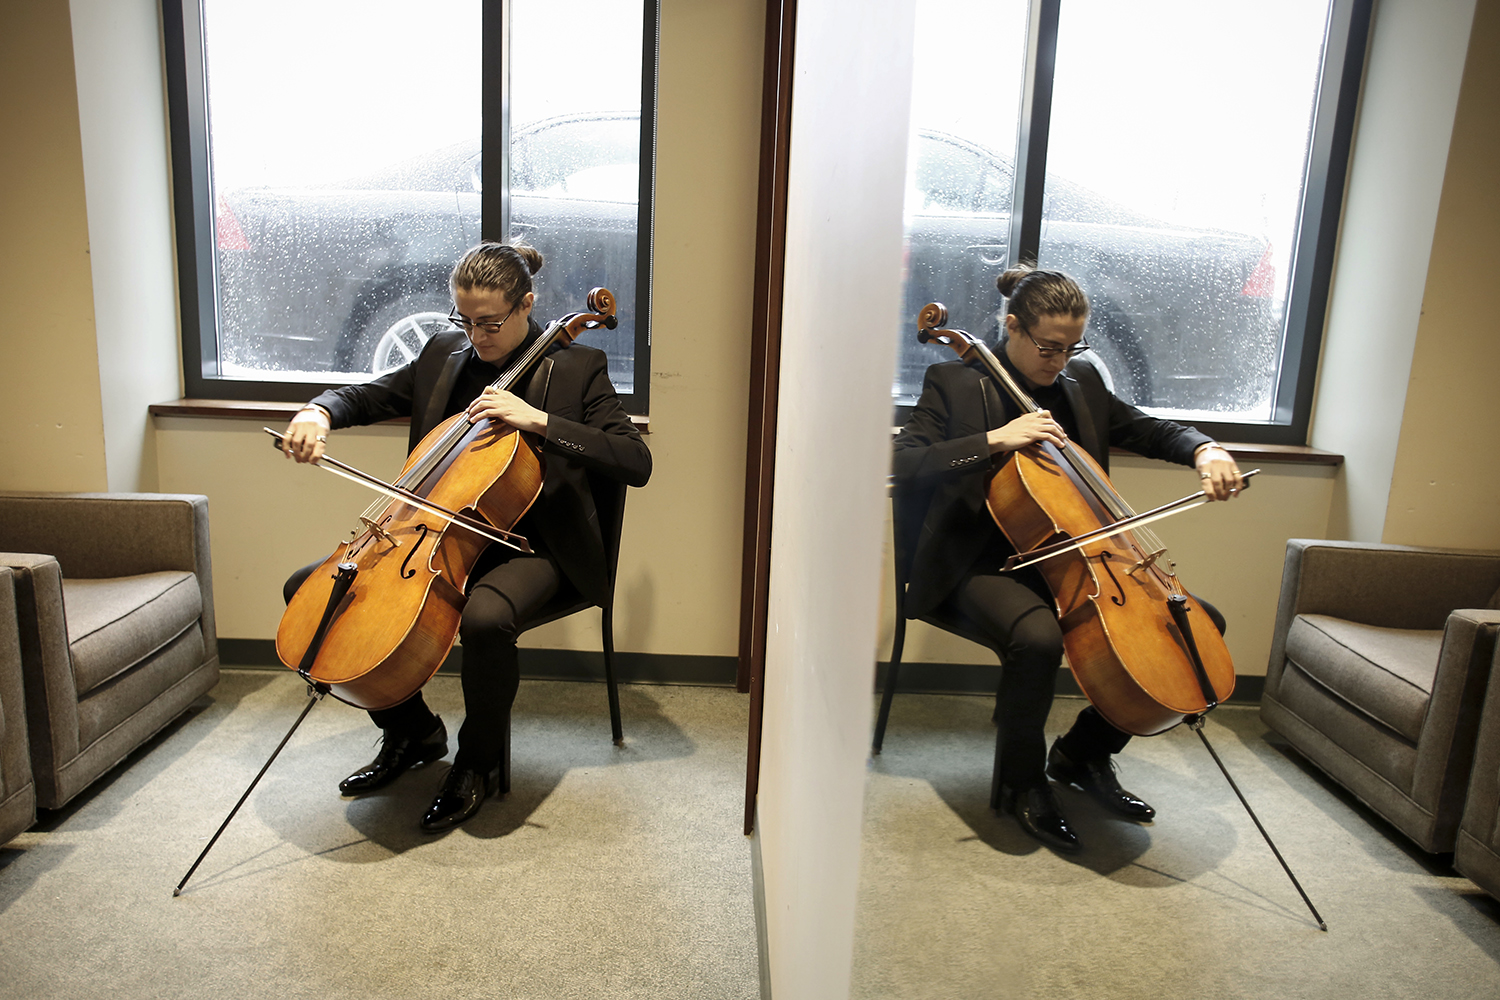 Santiago Cañón-Valencia, 18, from Dallas, TX practices before his performance in the senior division of the Sphinx Competition on Thursday, Feb. 20, 2014 at Orchestra Hall in Detroit. Tim Galloway or Al Jazeera America.